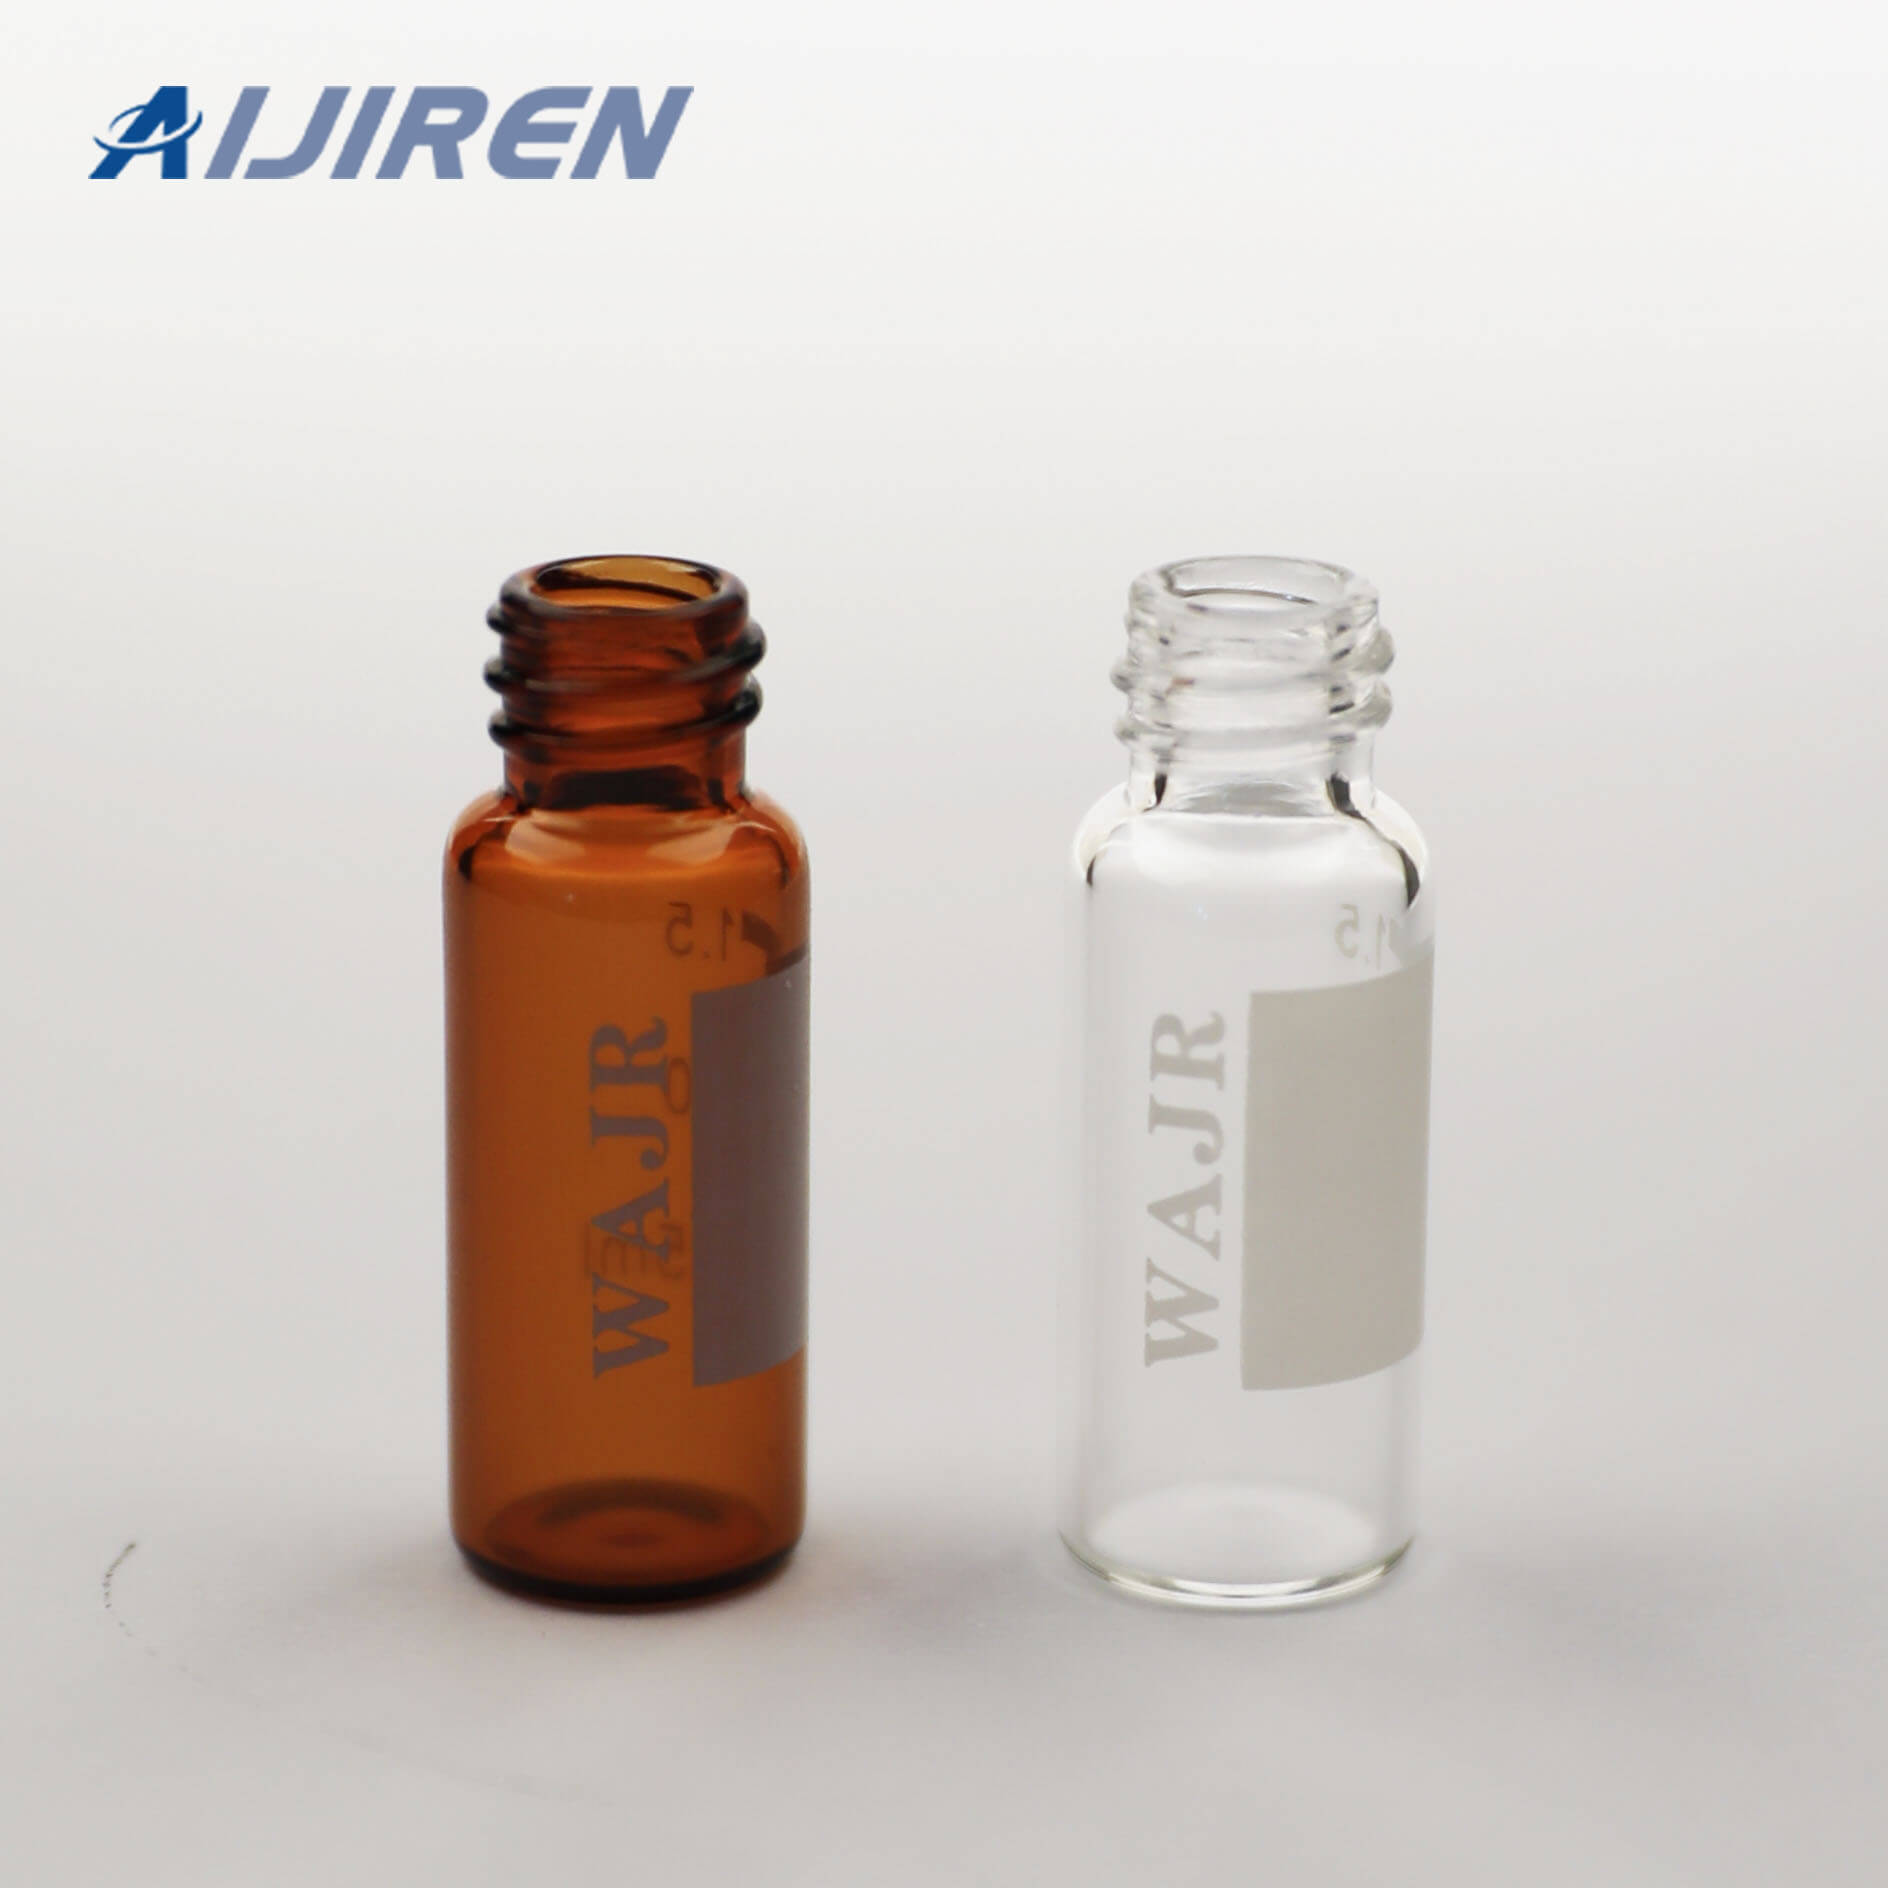 2ml 8-425 Screw Cap and Vial for WATERS